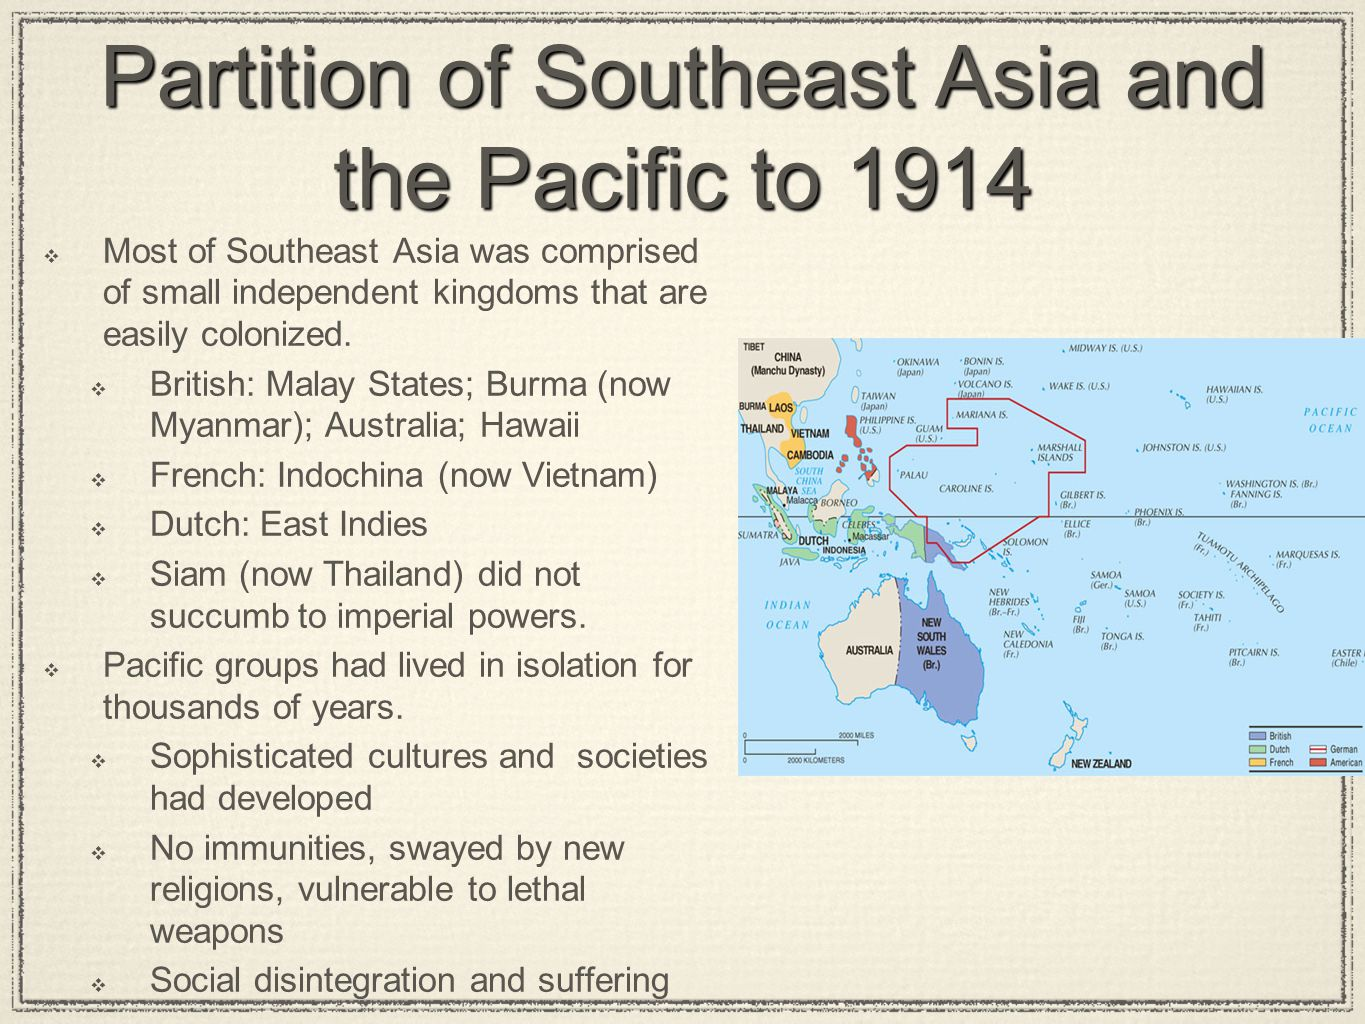 Partition of Southeast Asia and the Pacific to 1914